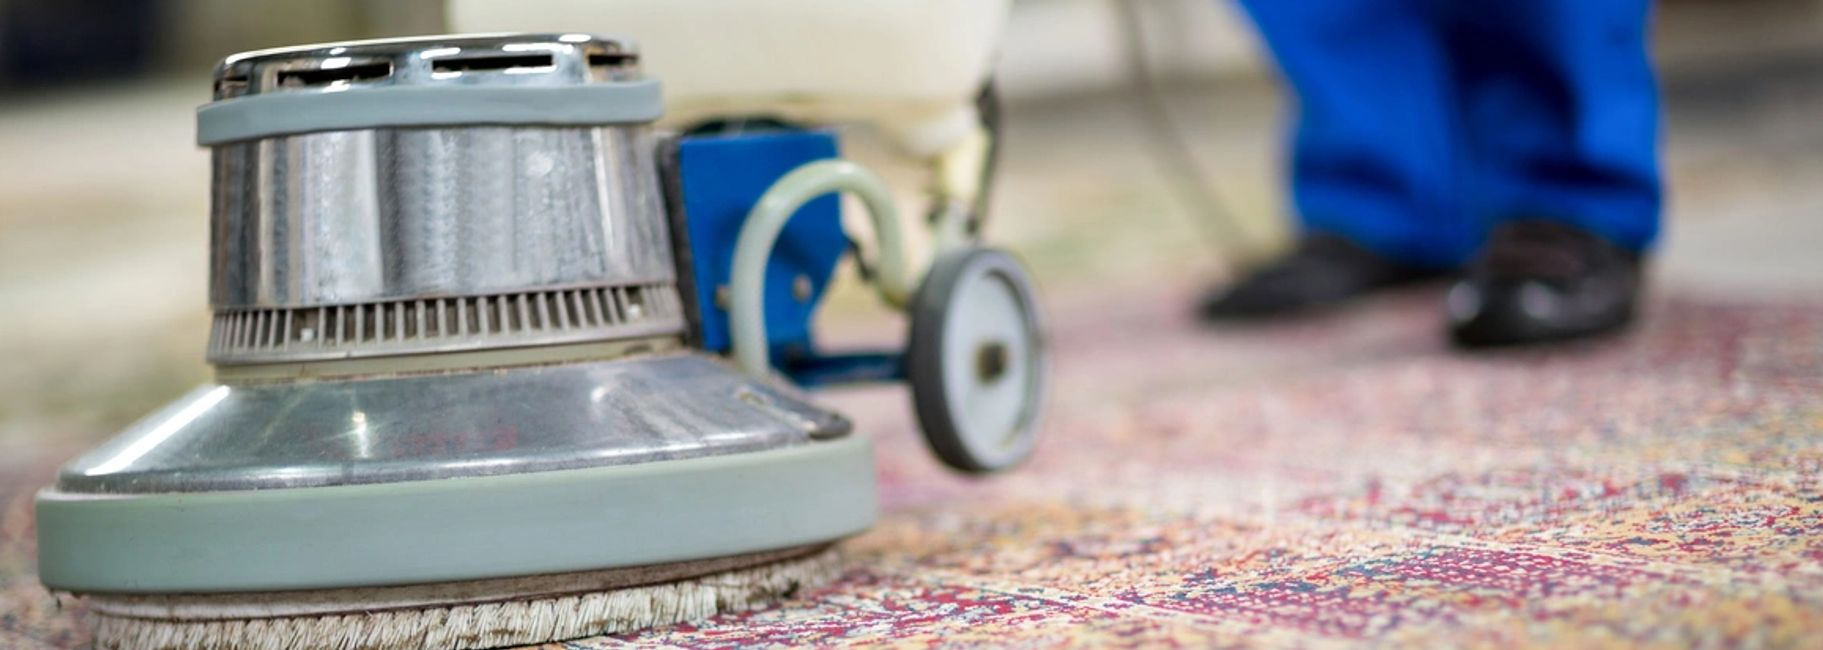 Carpet shampoo cleaning